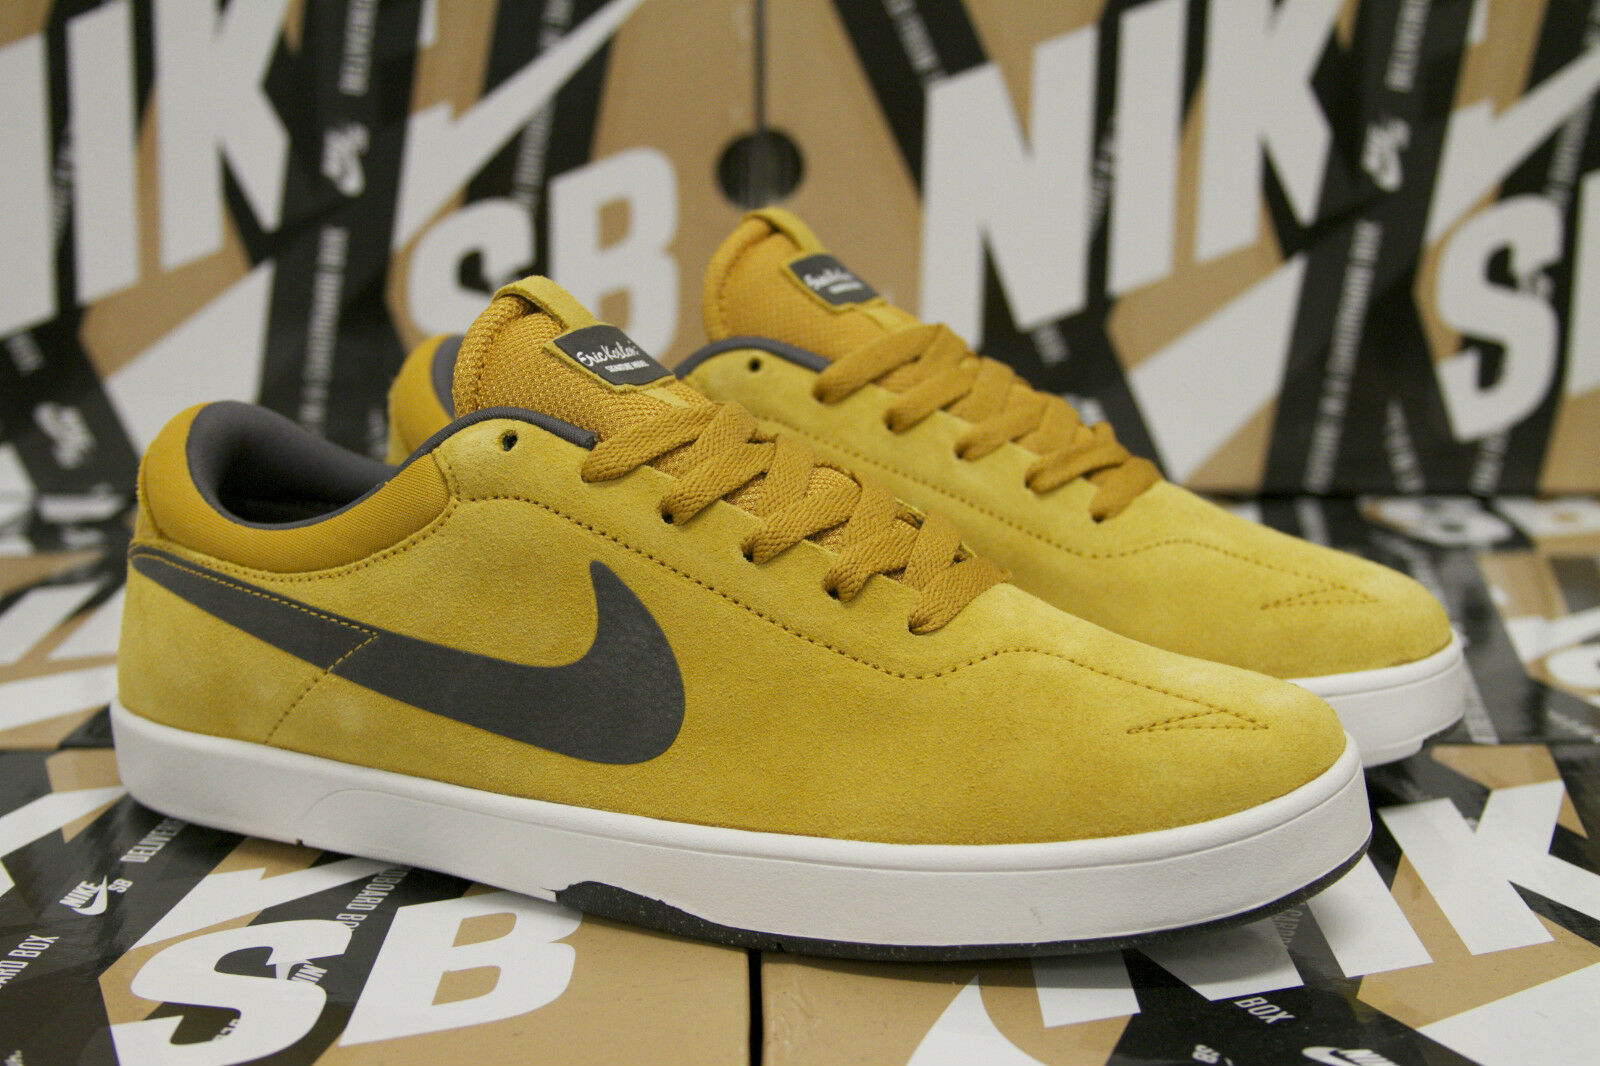 Nike SB Eric Koston Size 10 DARK gold LEAF MID FOG WHITE Yellow New 442476 701